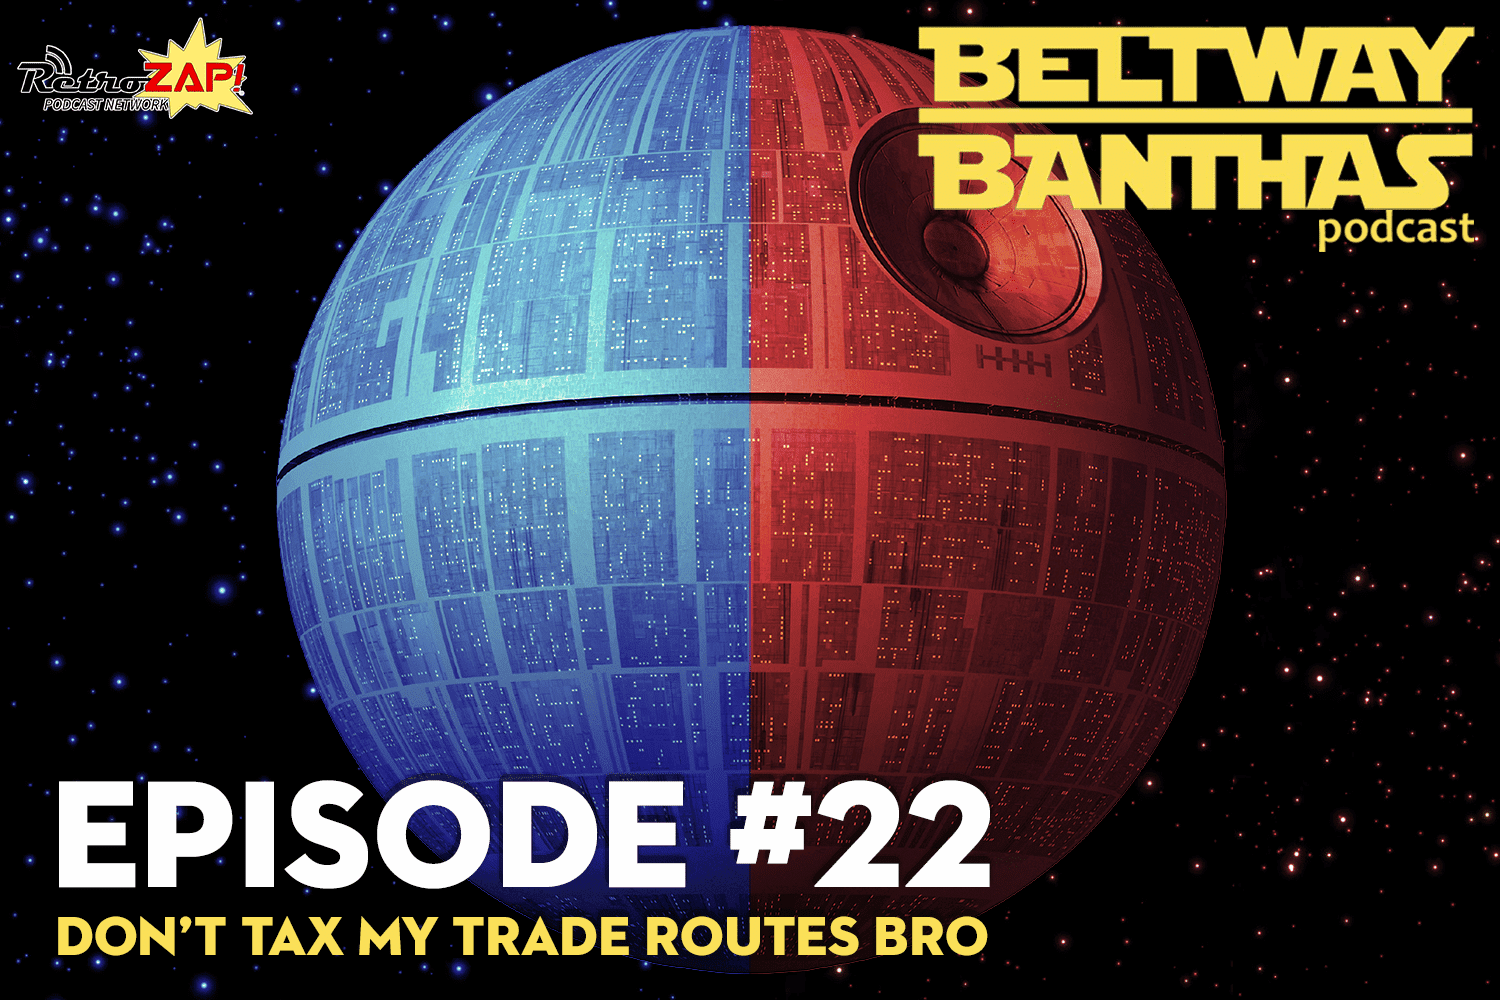 Beltway Banthas #22: Don't Tax My Trade Routes Bro